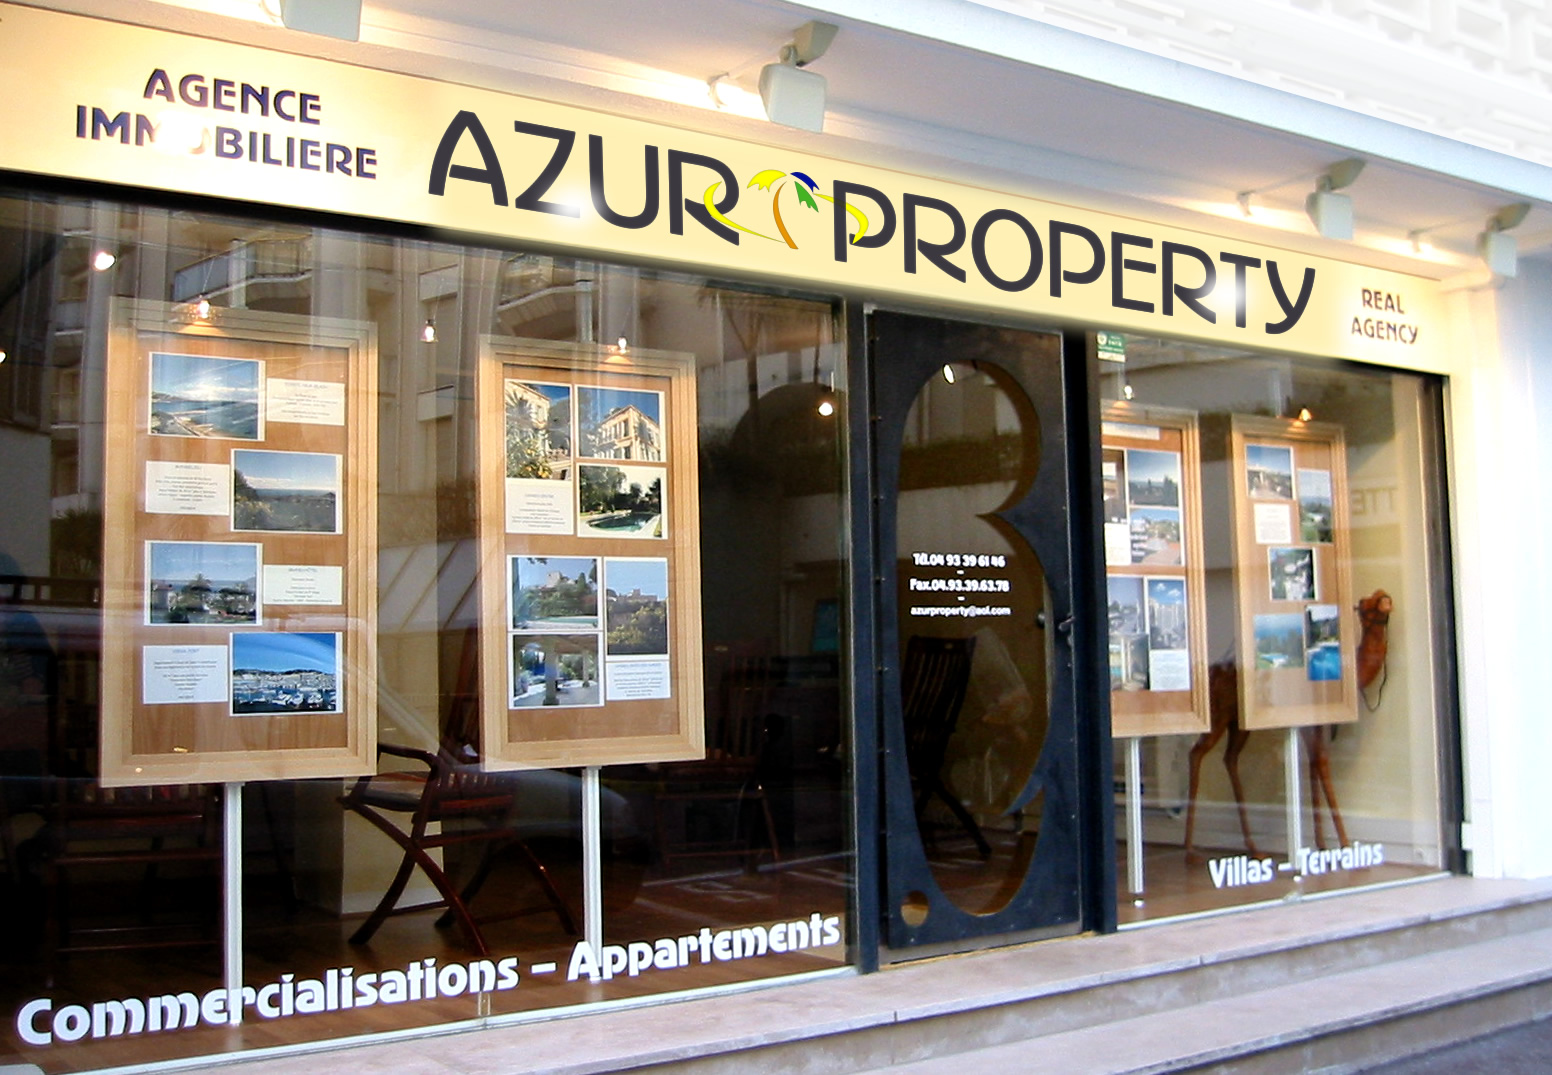 Agence immobili re cannes annonces immobili res azur for Annonce immobiliere agence